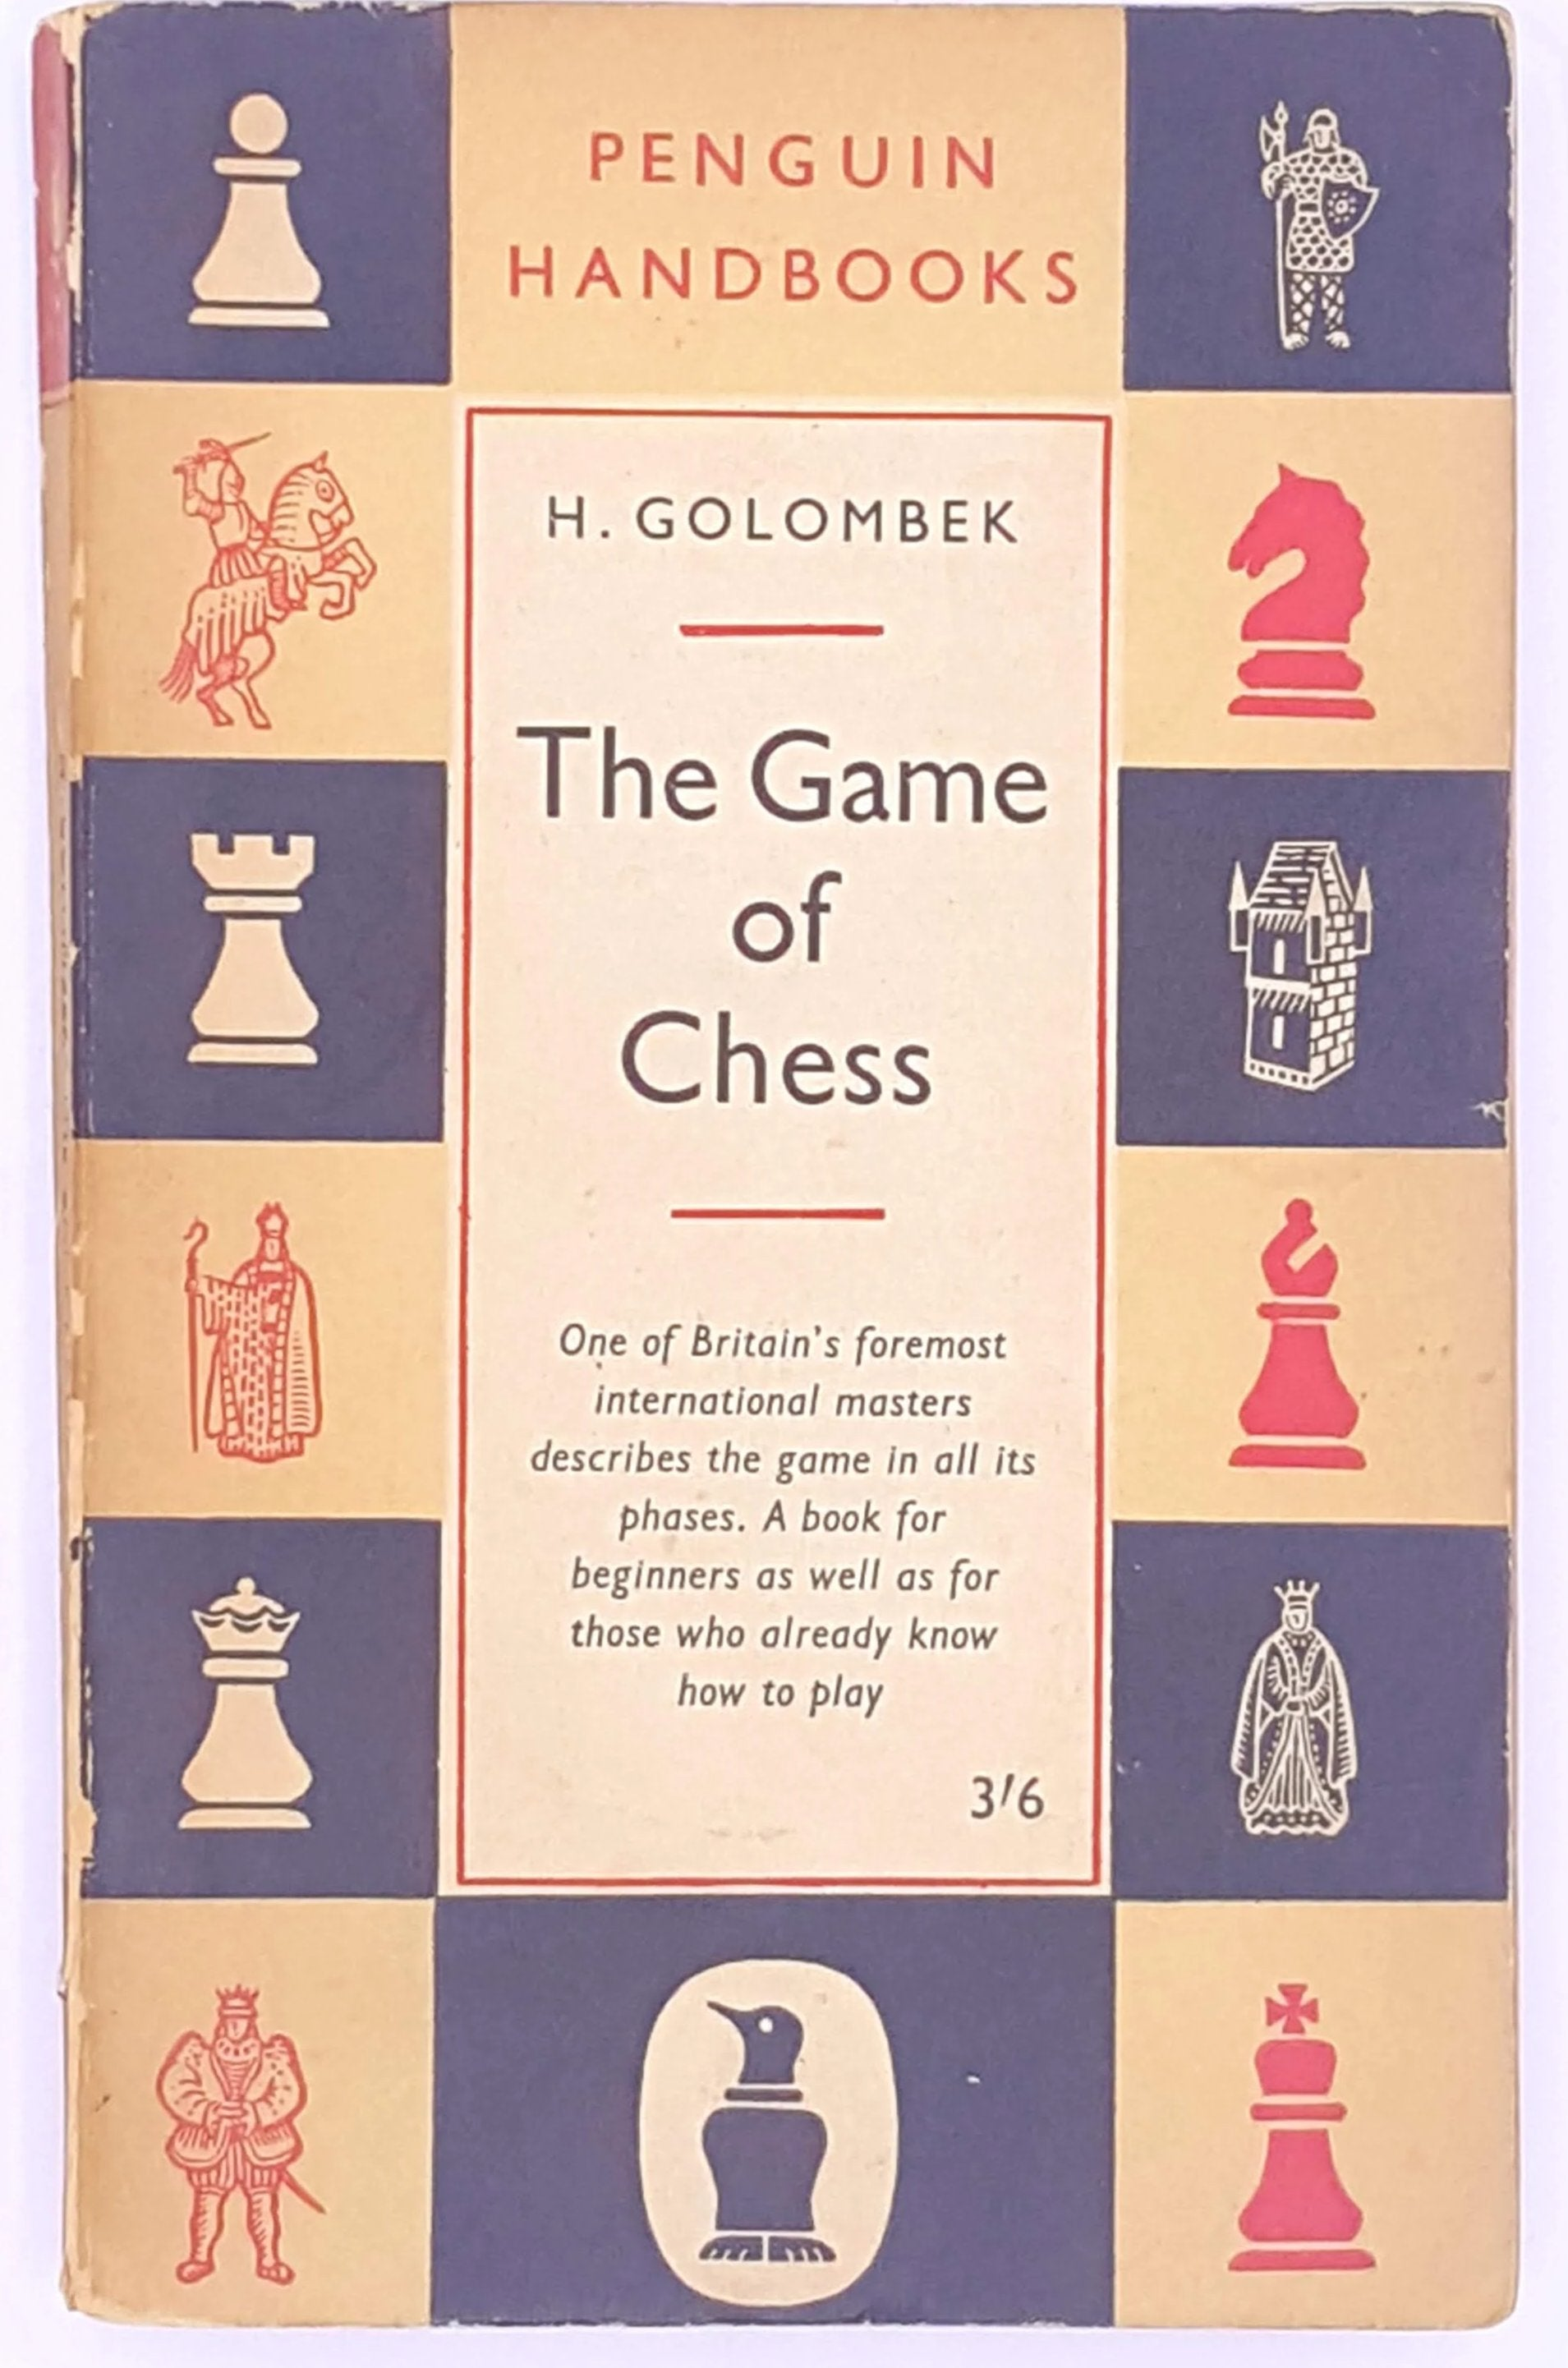 classic-antique-the-game-of-chess-christmas-gifts-decorative-H-golombek-thrift-books-patterned-vintage-penguin-old-country-house-library-